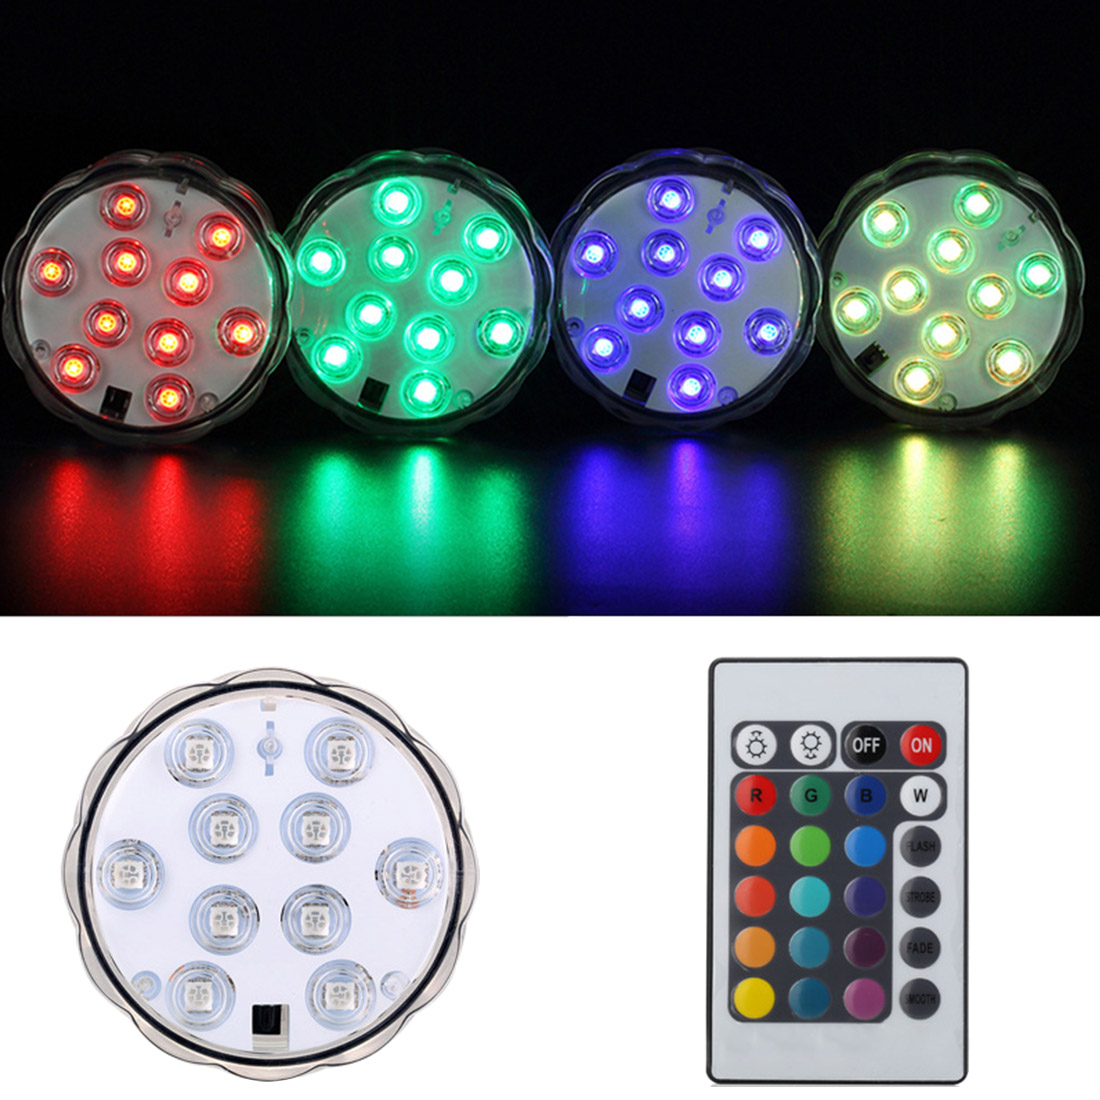 Strong-Willed 5pcs 10w 12v Underwater Rgb Led Light 1000lm Waterproof Ip68 Fountain Pool Lamp 16 Color Change With 24 Key Ir Remote Controller Excellent Quality Lights & Lighting Led Bulbs & Tubes